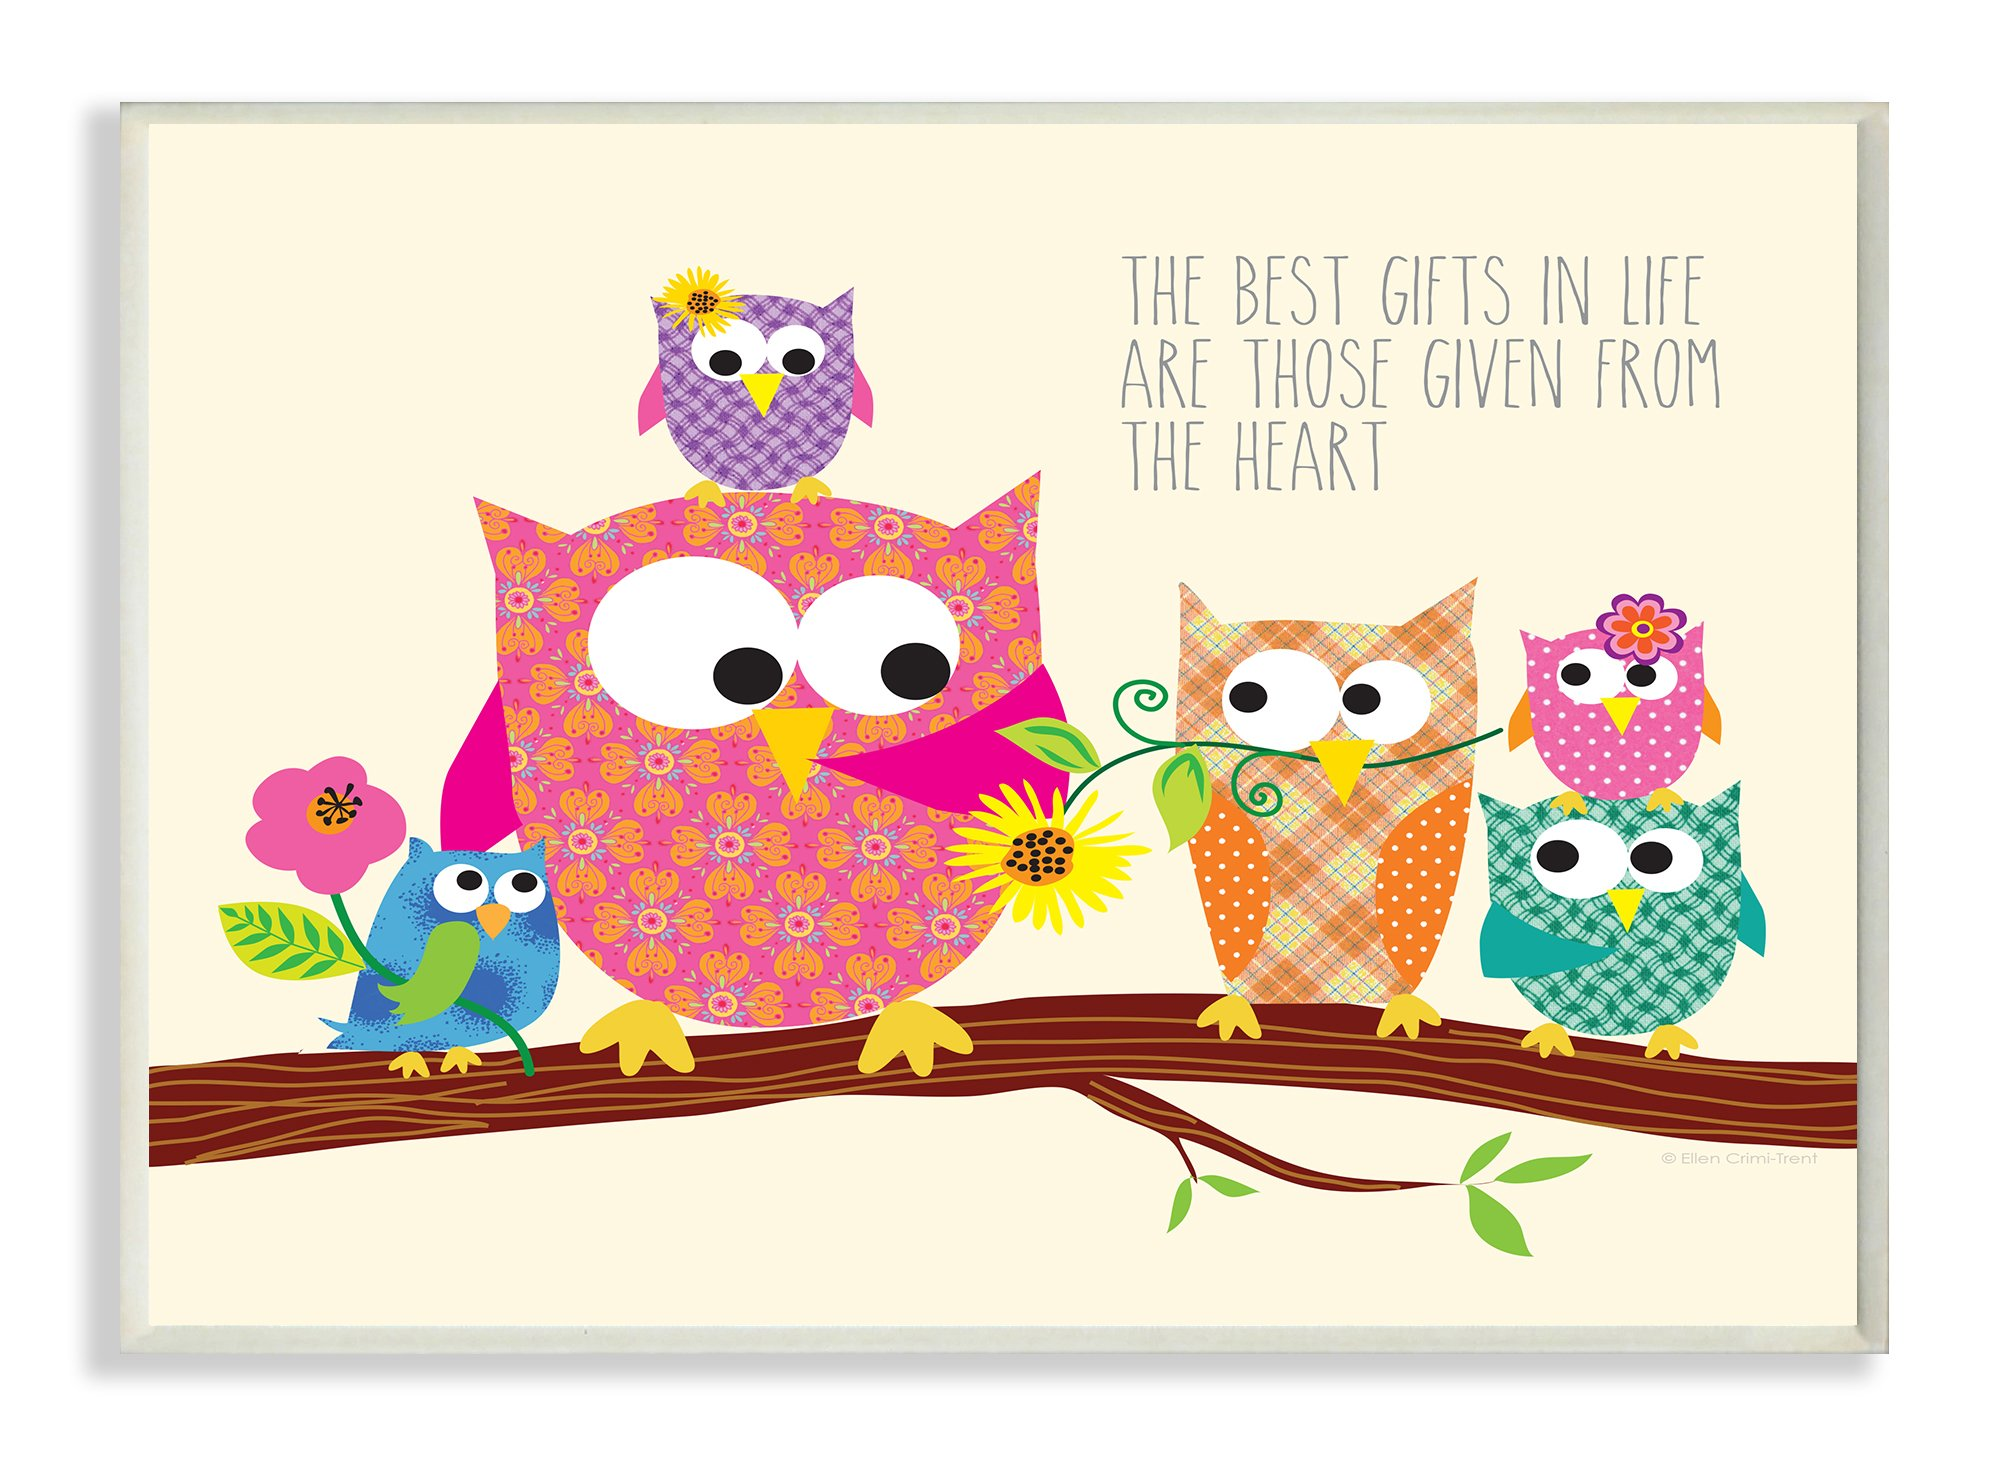 The Kids Room by Stupell The Best Gifts In Life Are Those Given From The Heart Owls Rectangle Wall Plaque, 11 x 0.5 x 15, Proudly Made in USA